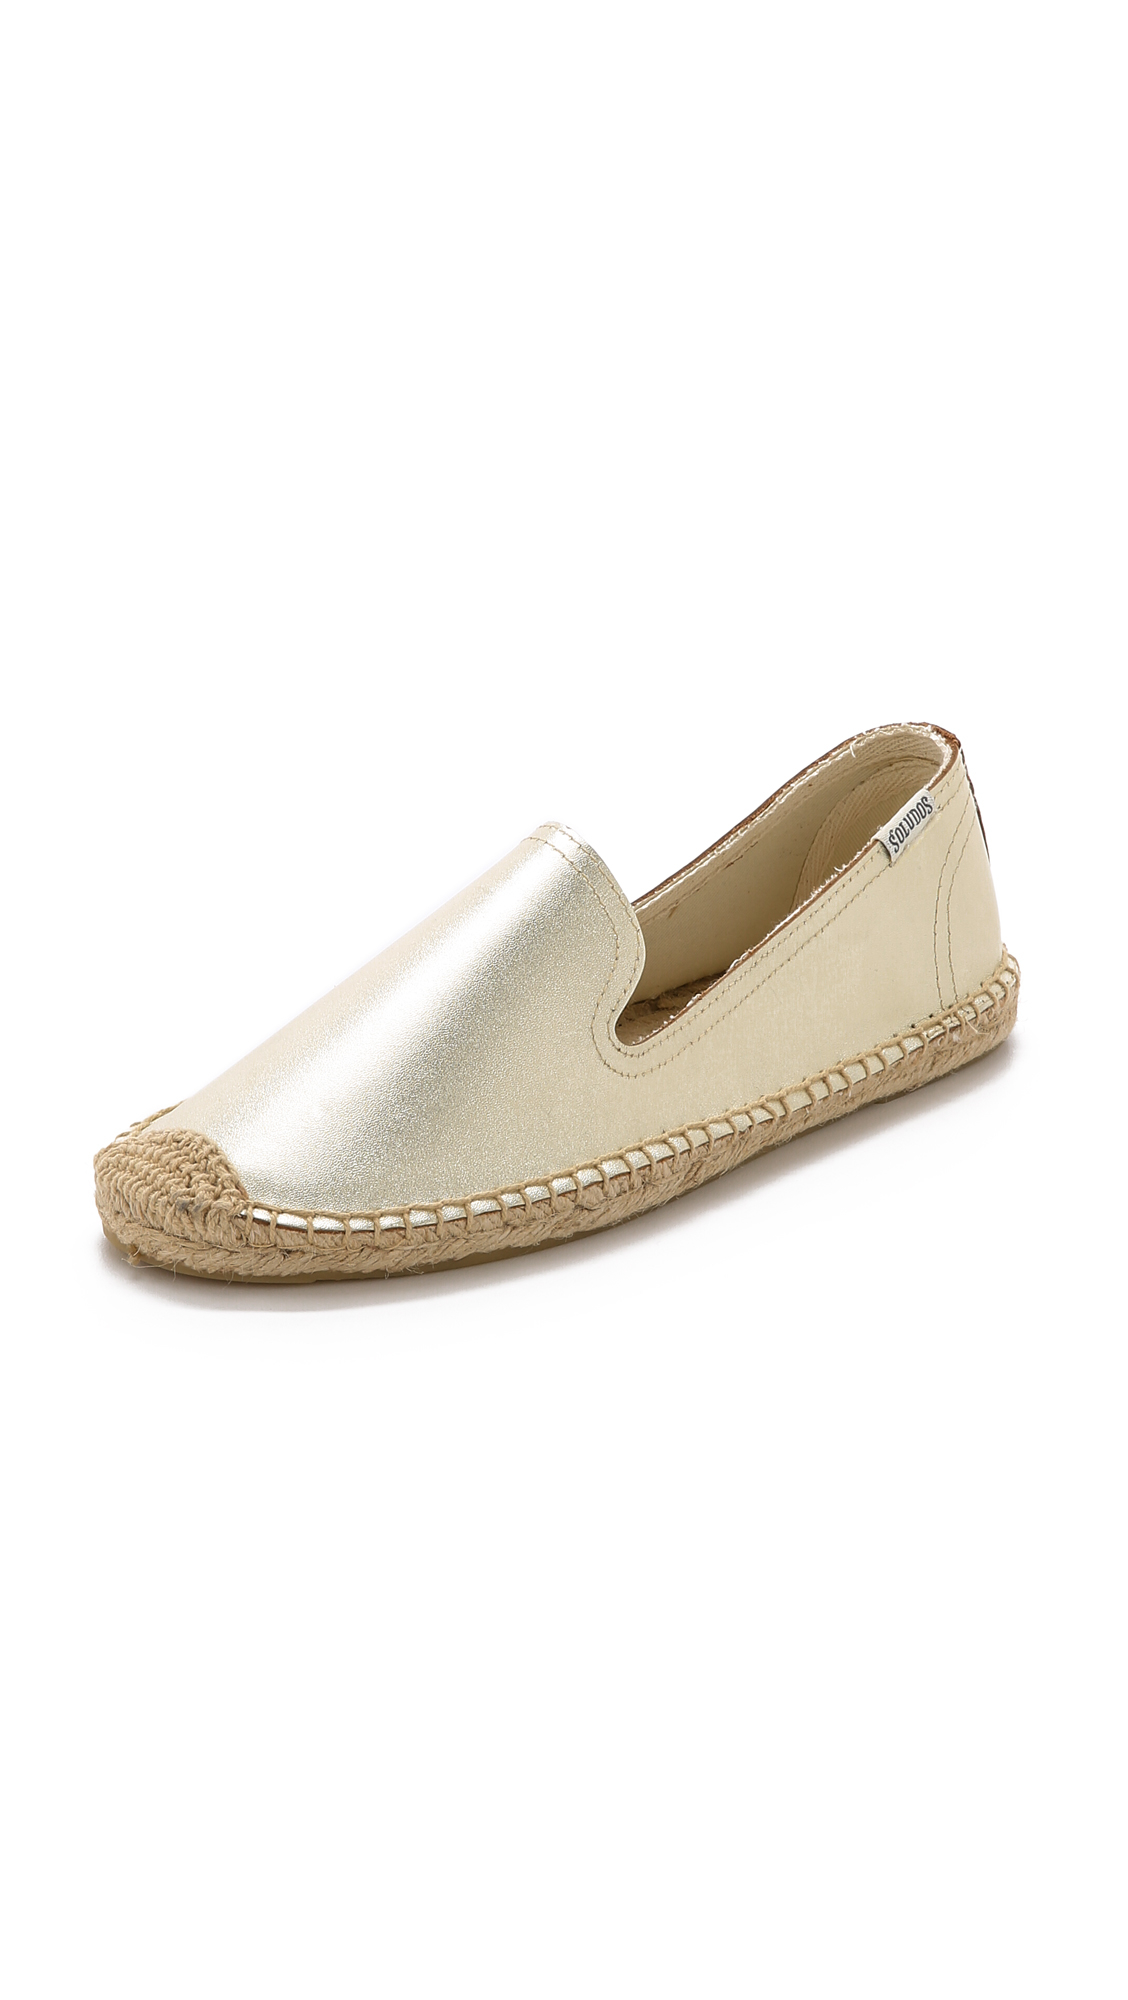 cd10e7541d454 Lyst - Soludos Metallic Leather Smoking Slipper Espadrilles in Metallic